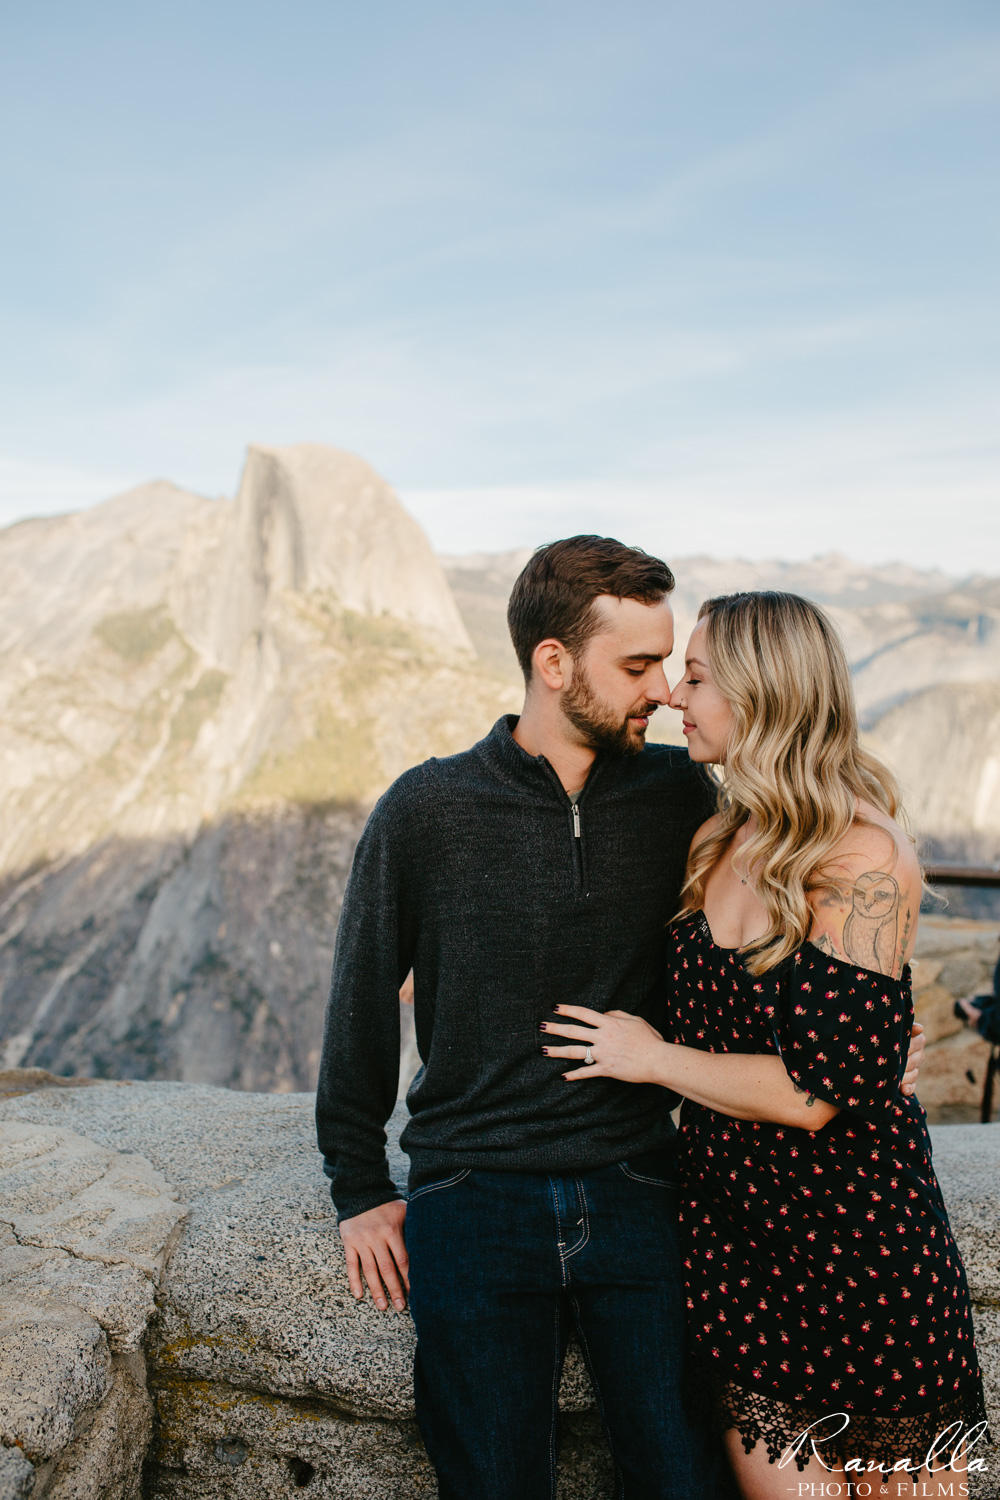 Yosemite Engagement Session-Glacier Point Engaegment Photos-Ranalla Photo & Films-1.jpg